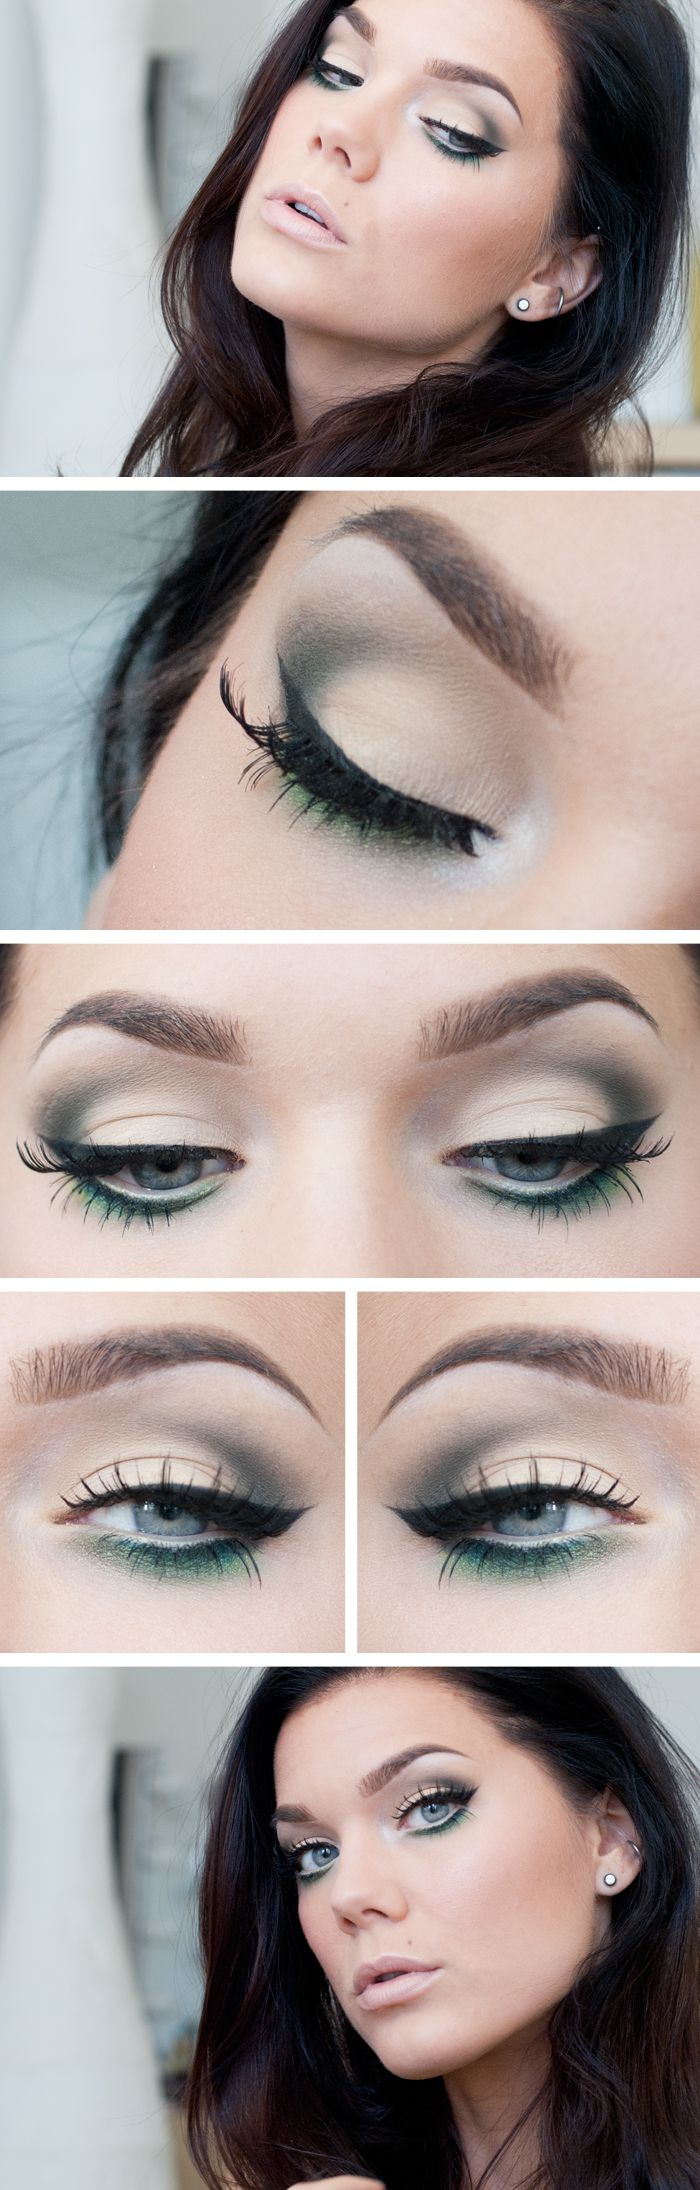 "Today's Look : ""Must be the Love"" -Linda Hallberg (a forest green/mossy green smokey eye) 06/15/13"